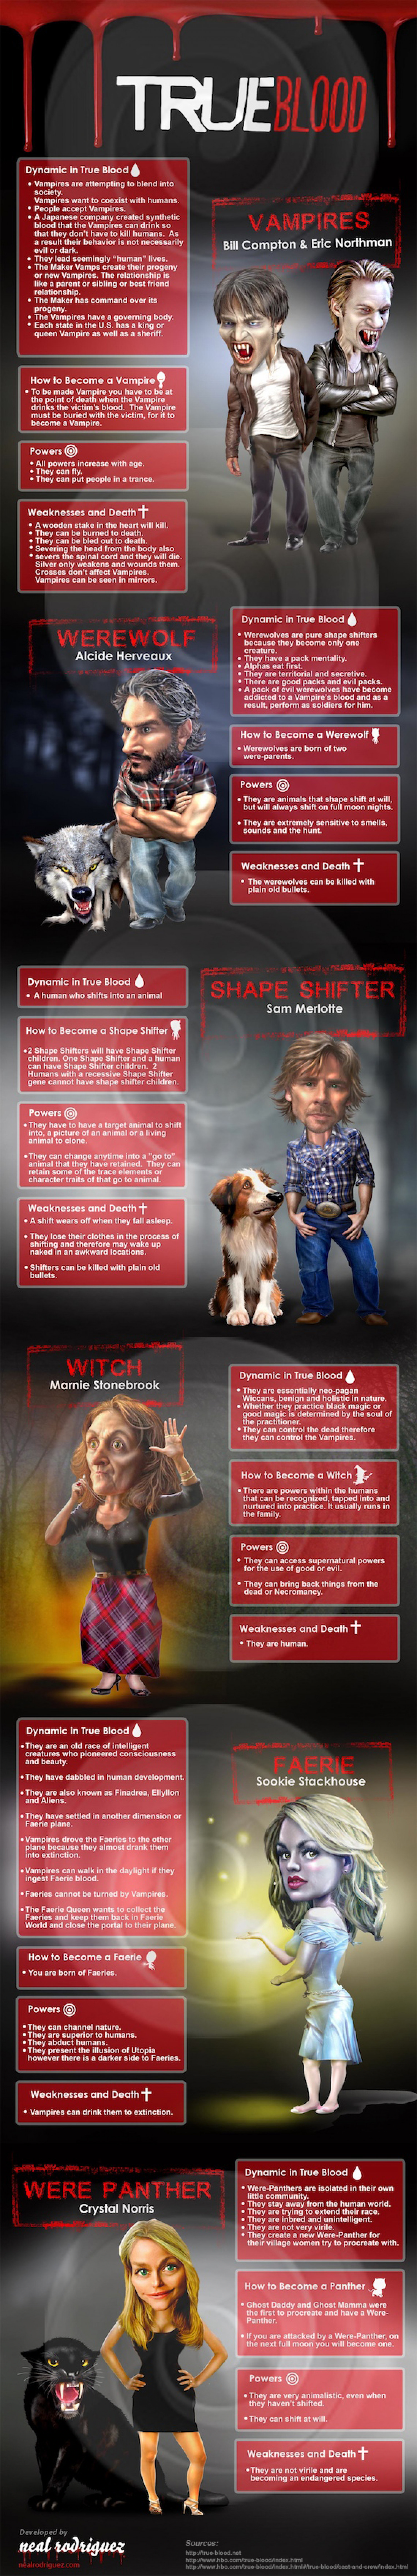 True Blood Mythology Infographic